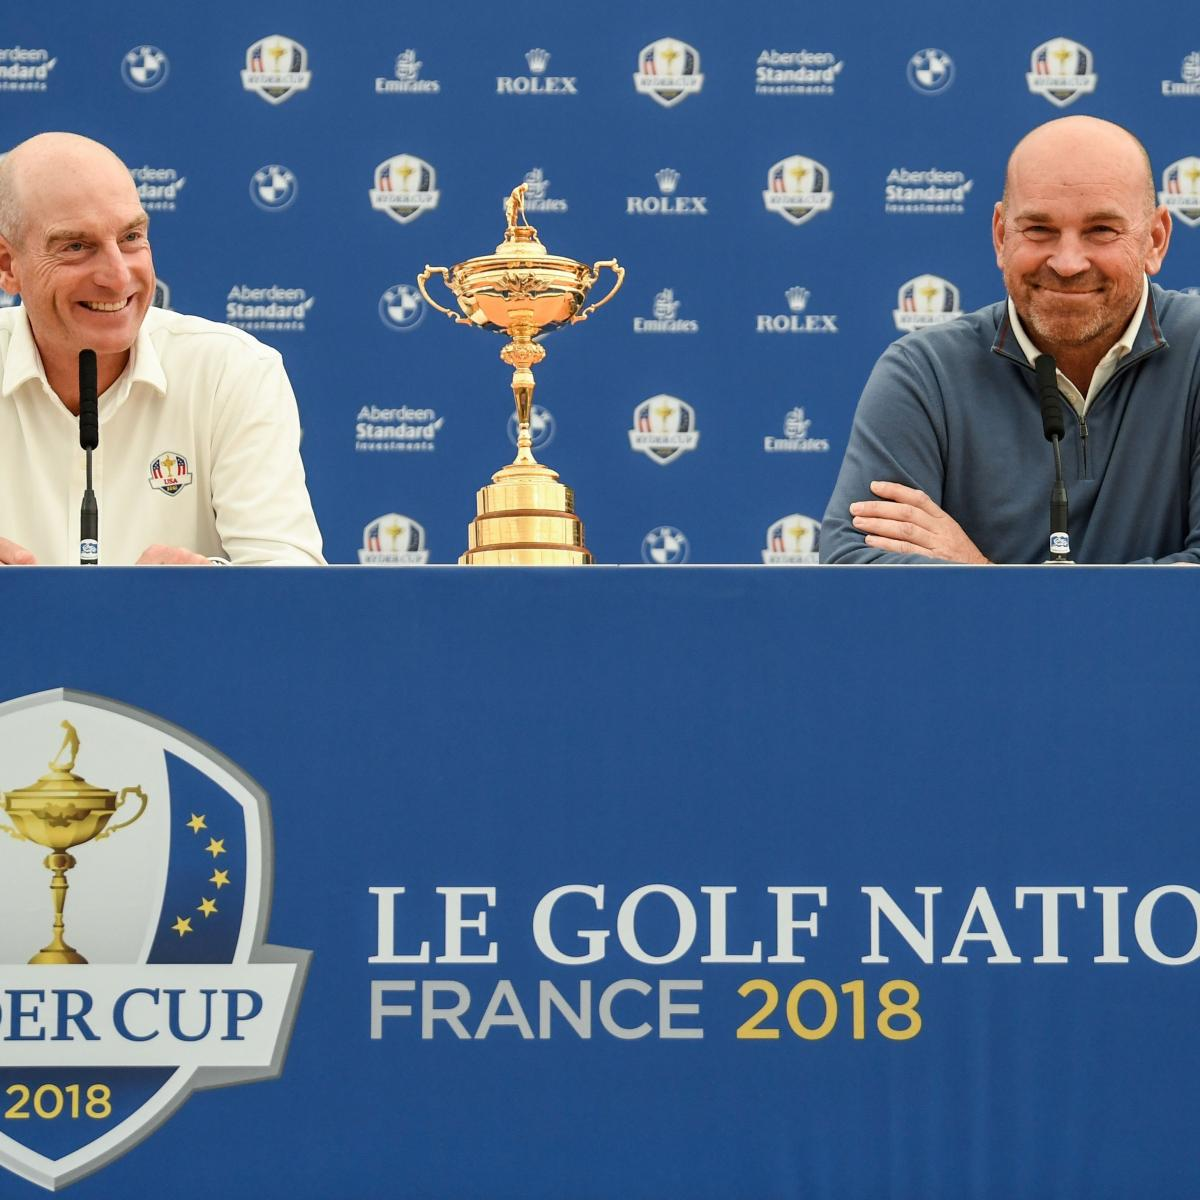 Ryder Cup 2018: Rules, Format and Points System Primer for Golf Tournament